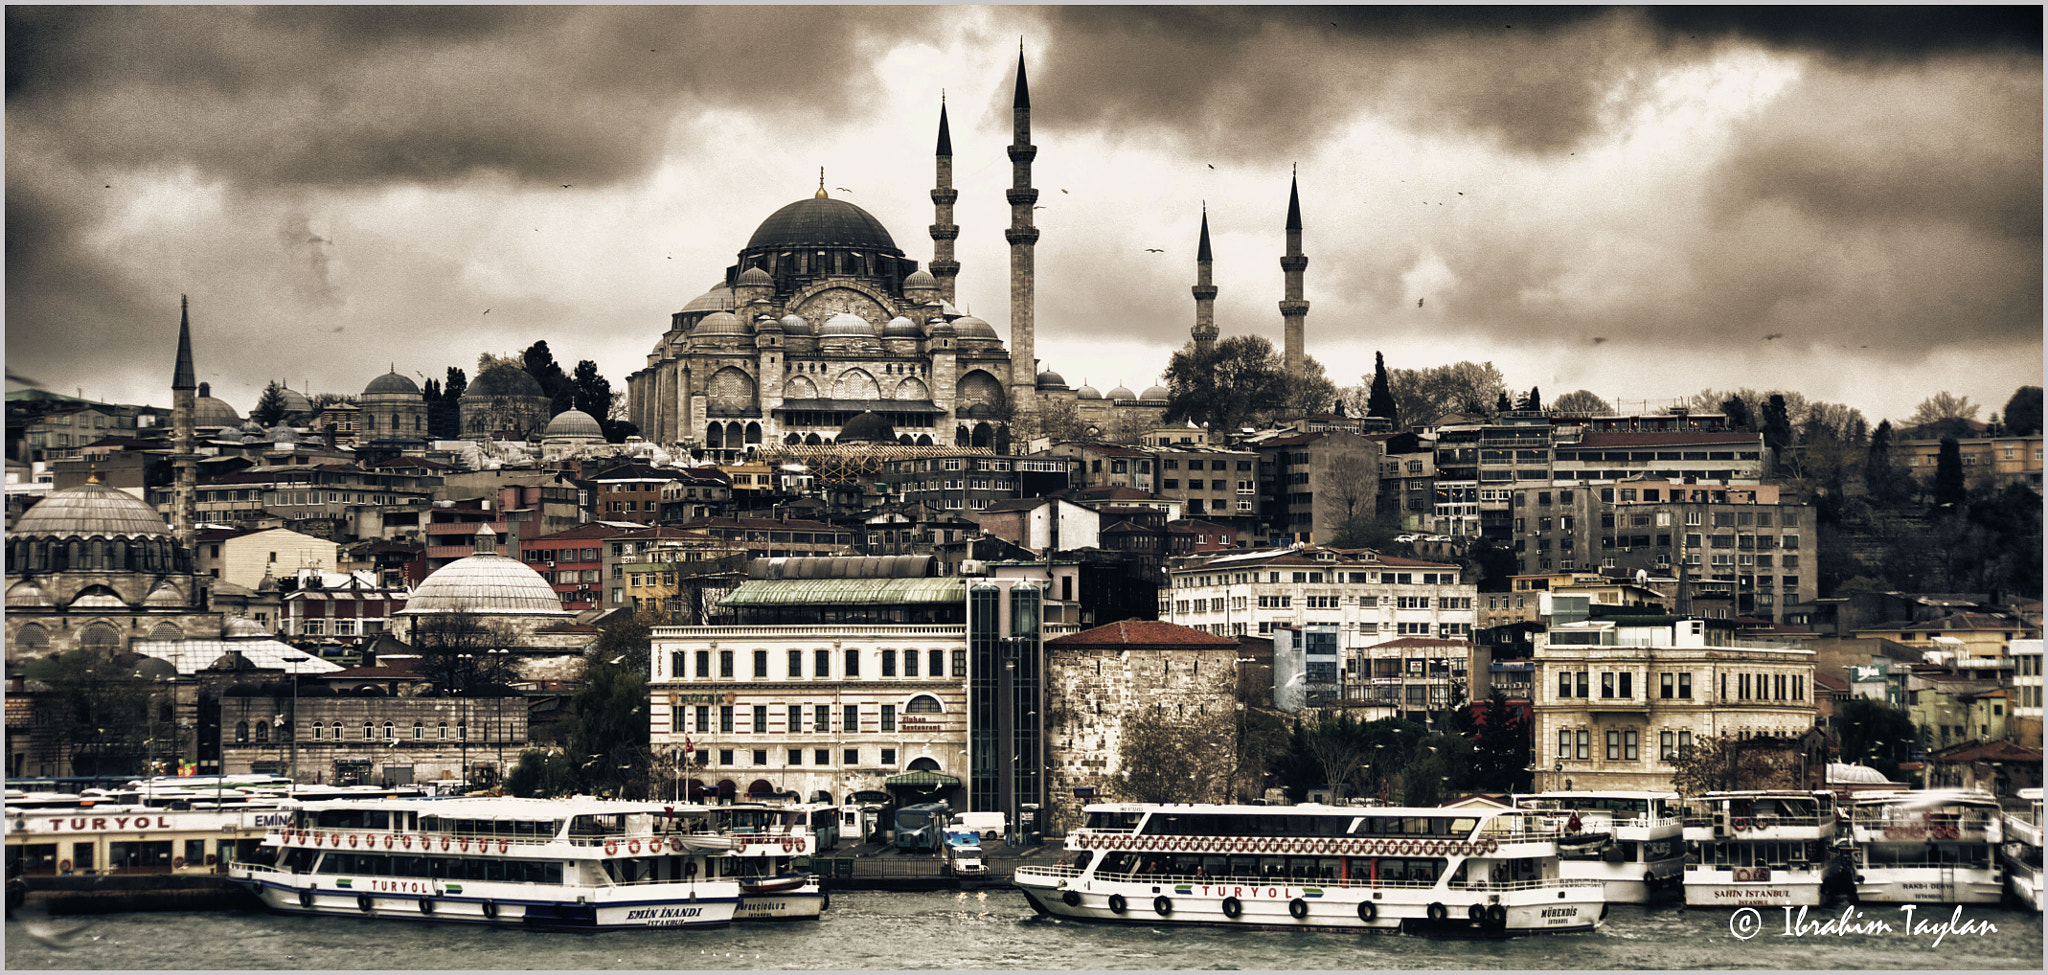 Photograph Untitled by ibrahim taylan on 500px